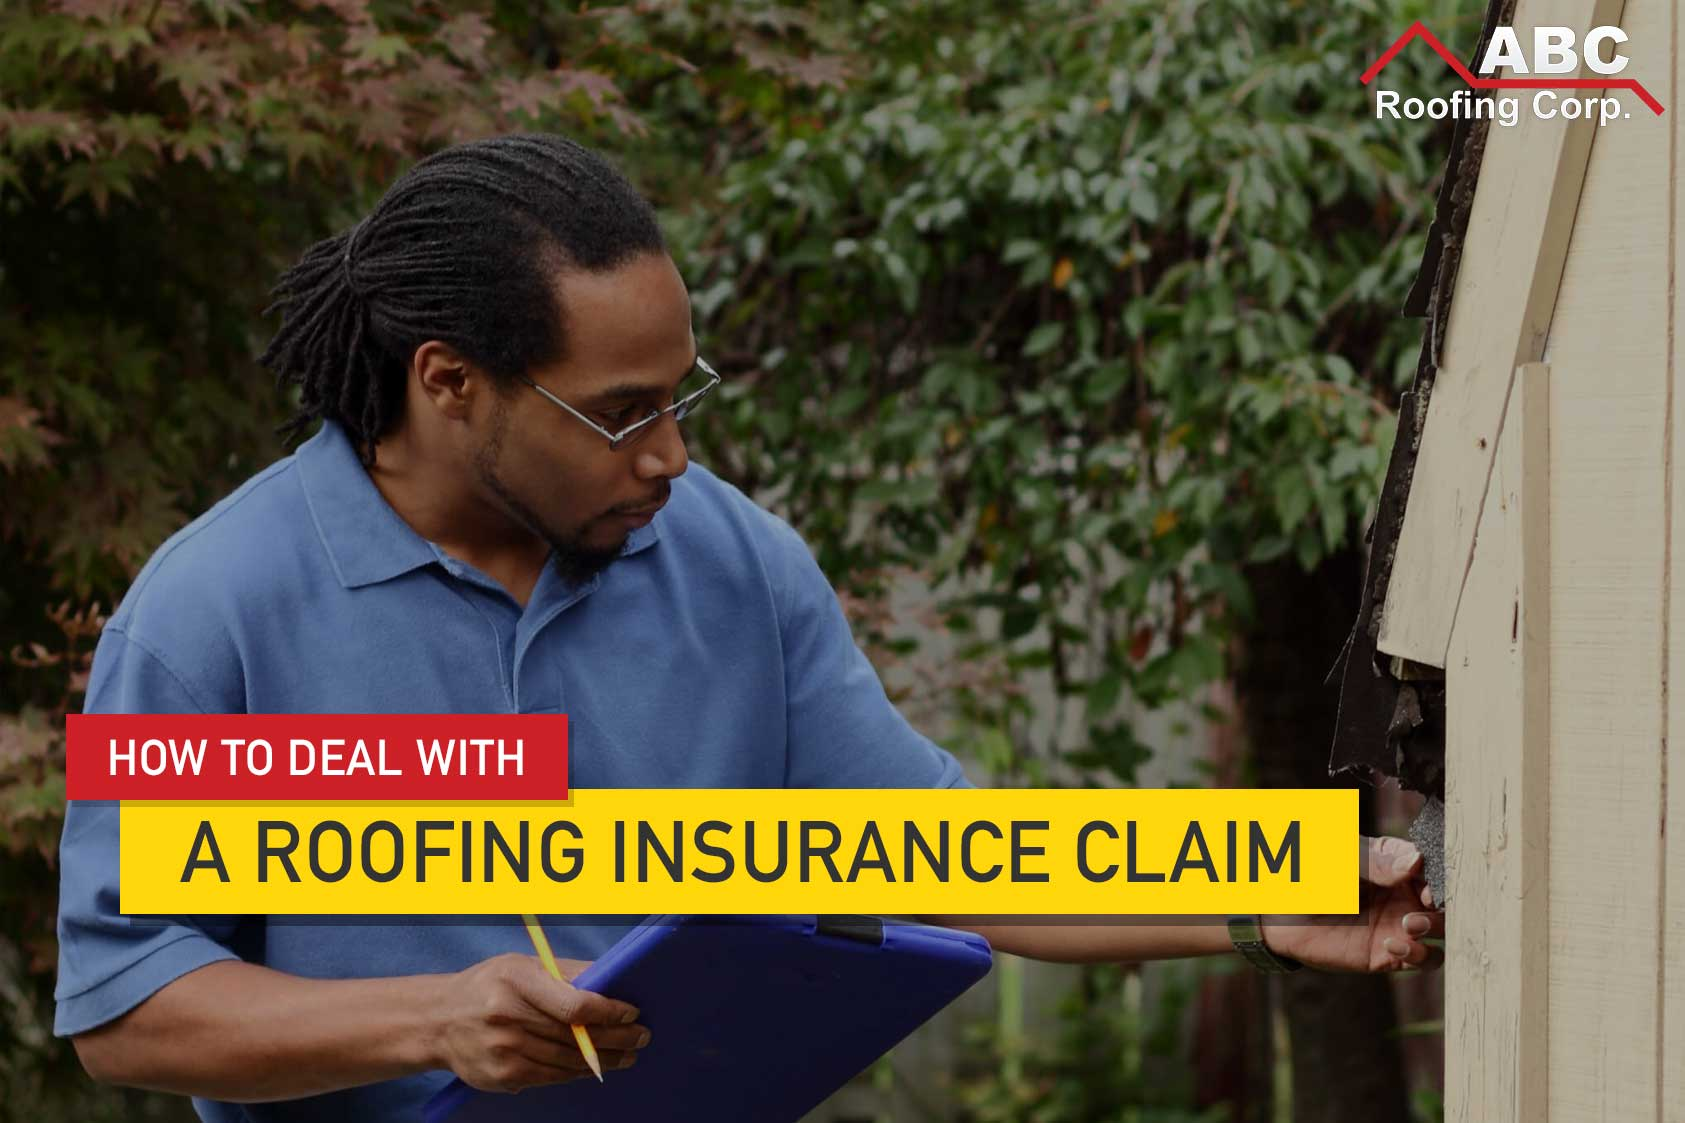 A Roofing Insurance Claim